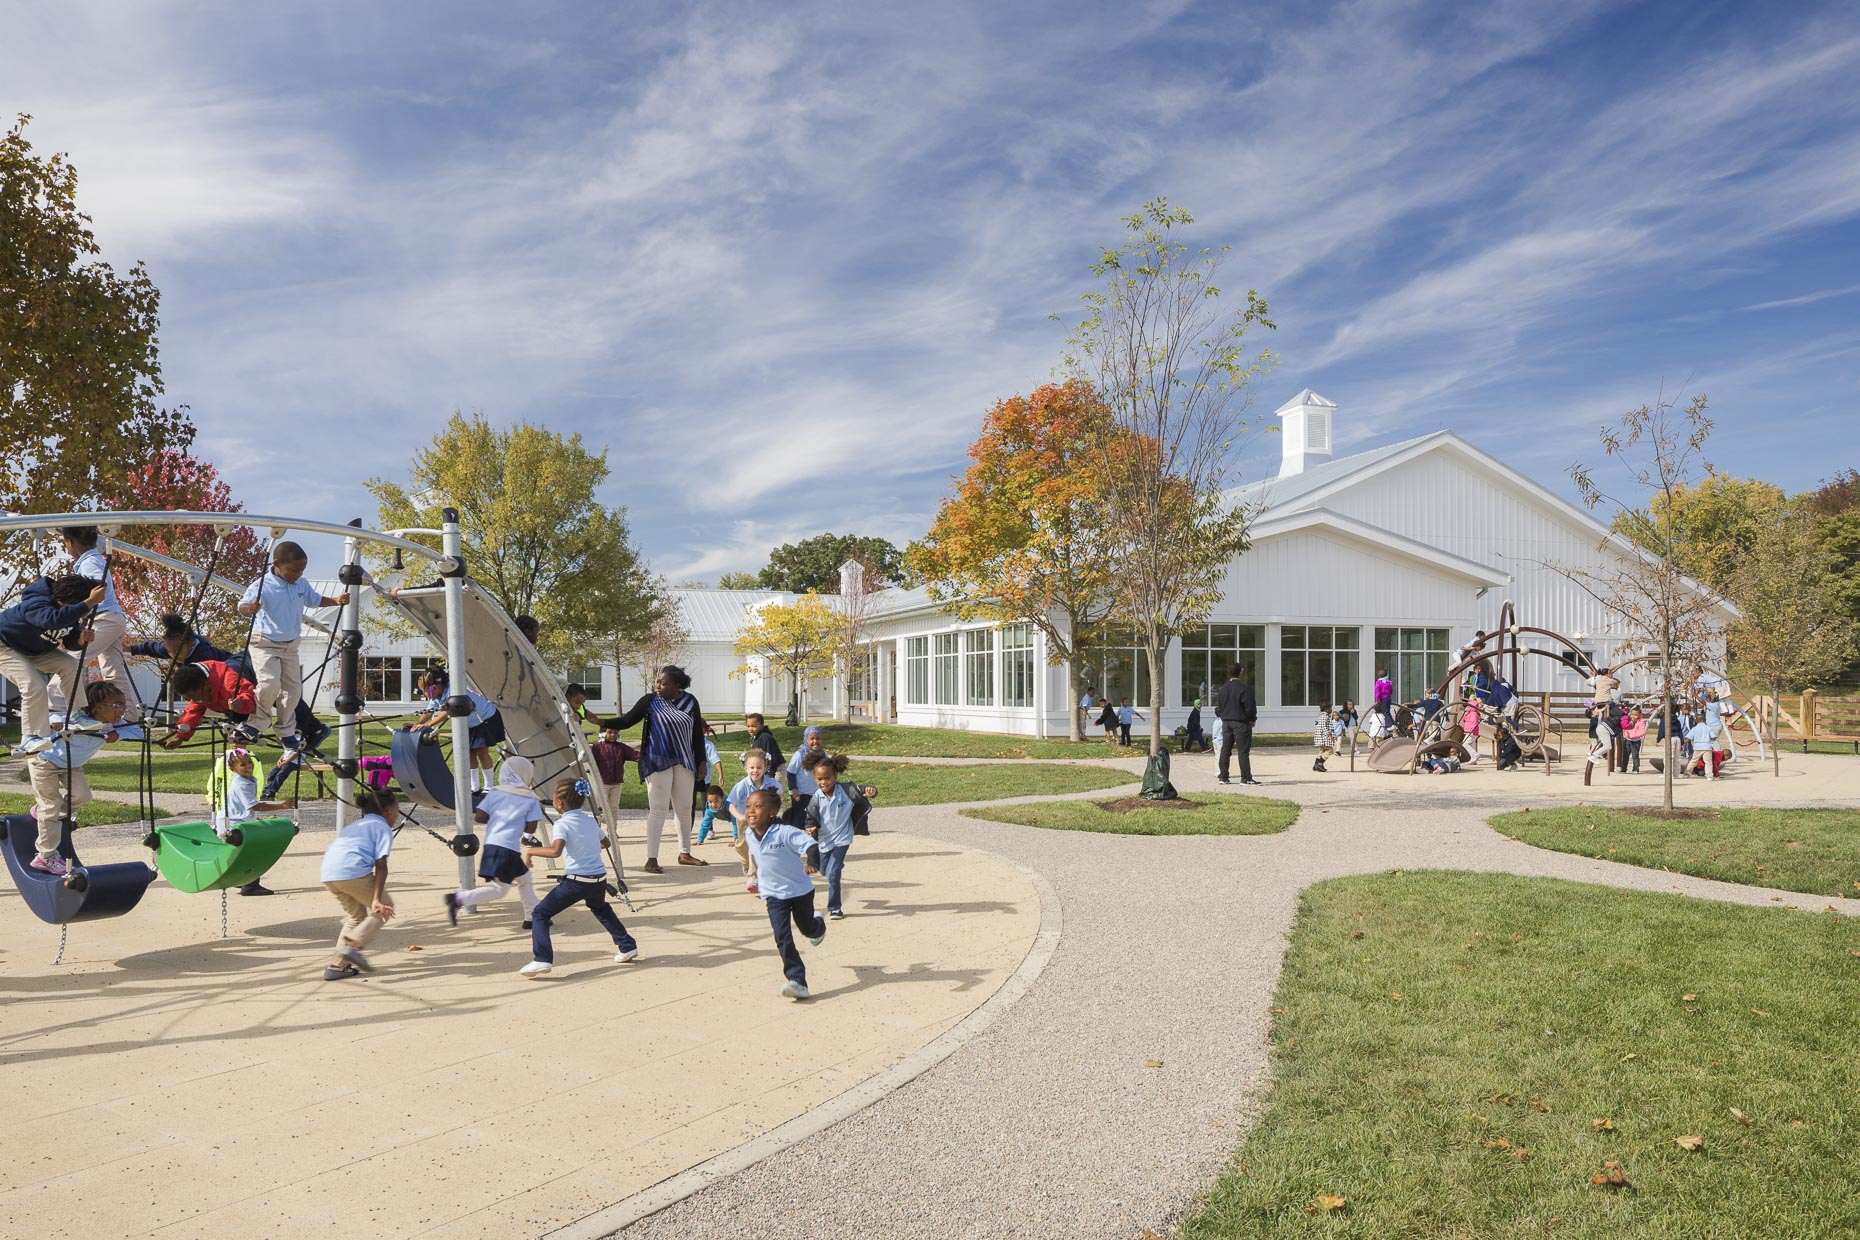 KIPP Columbus Charter School by Moody Nolan photographed by Brad Feinknopf based in Columbus, Ohio